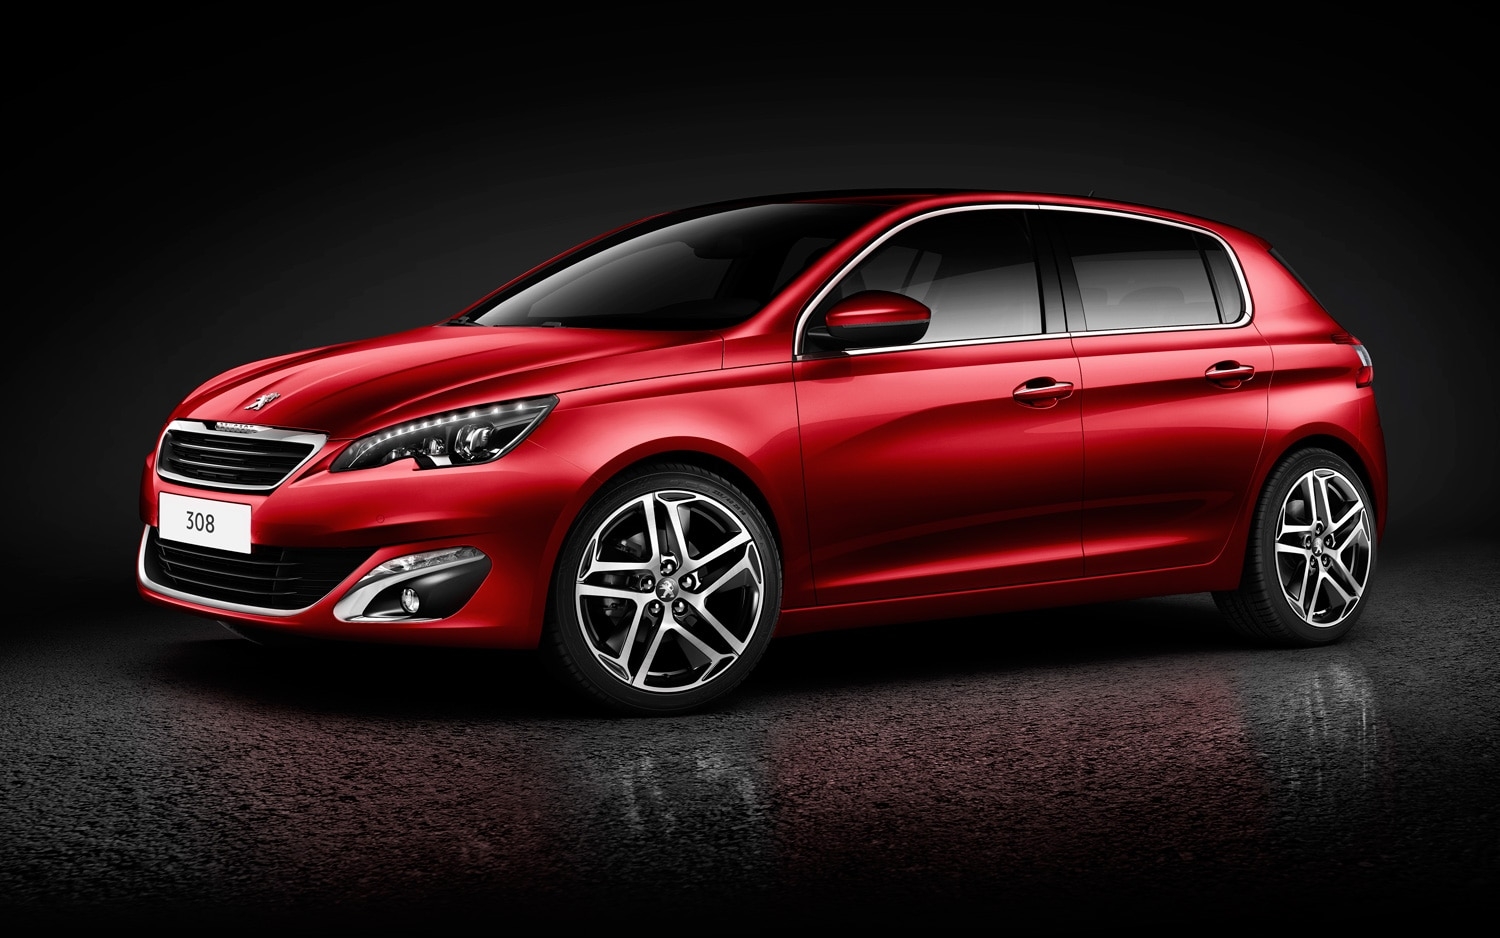 2013 Peugeot 308 Front Three Quarters View In Red1